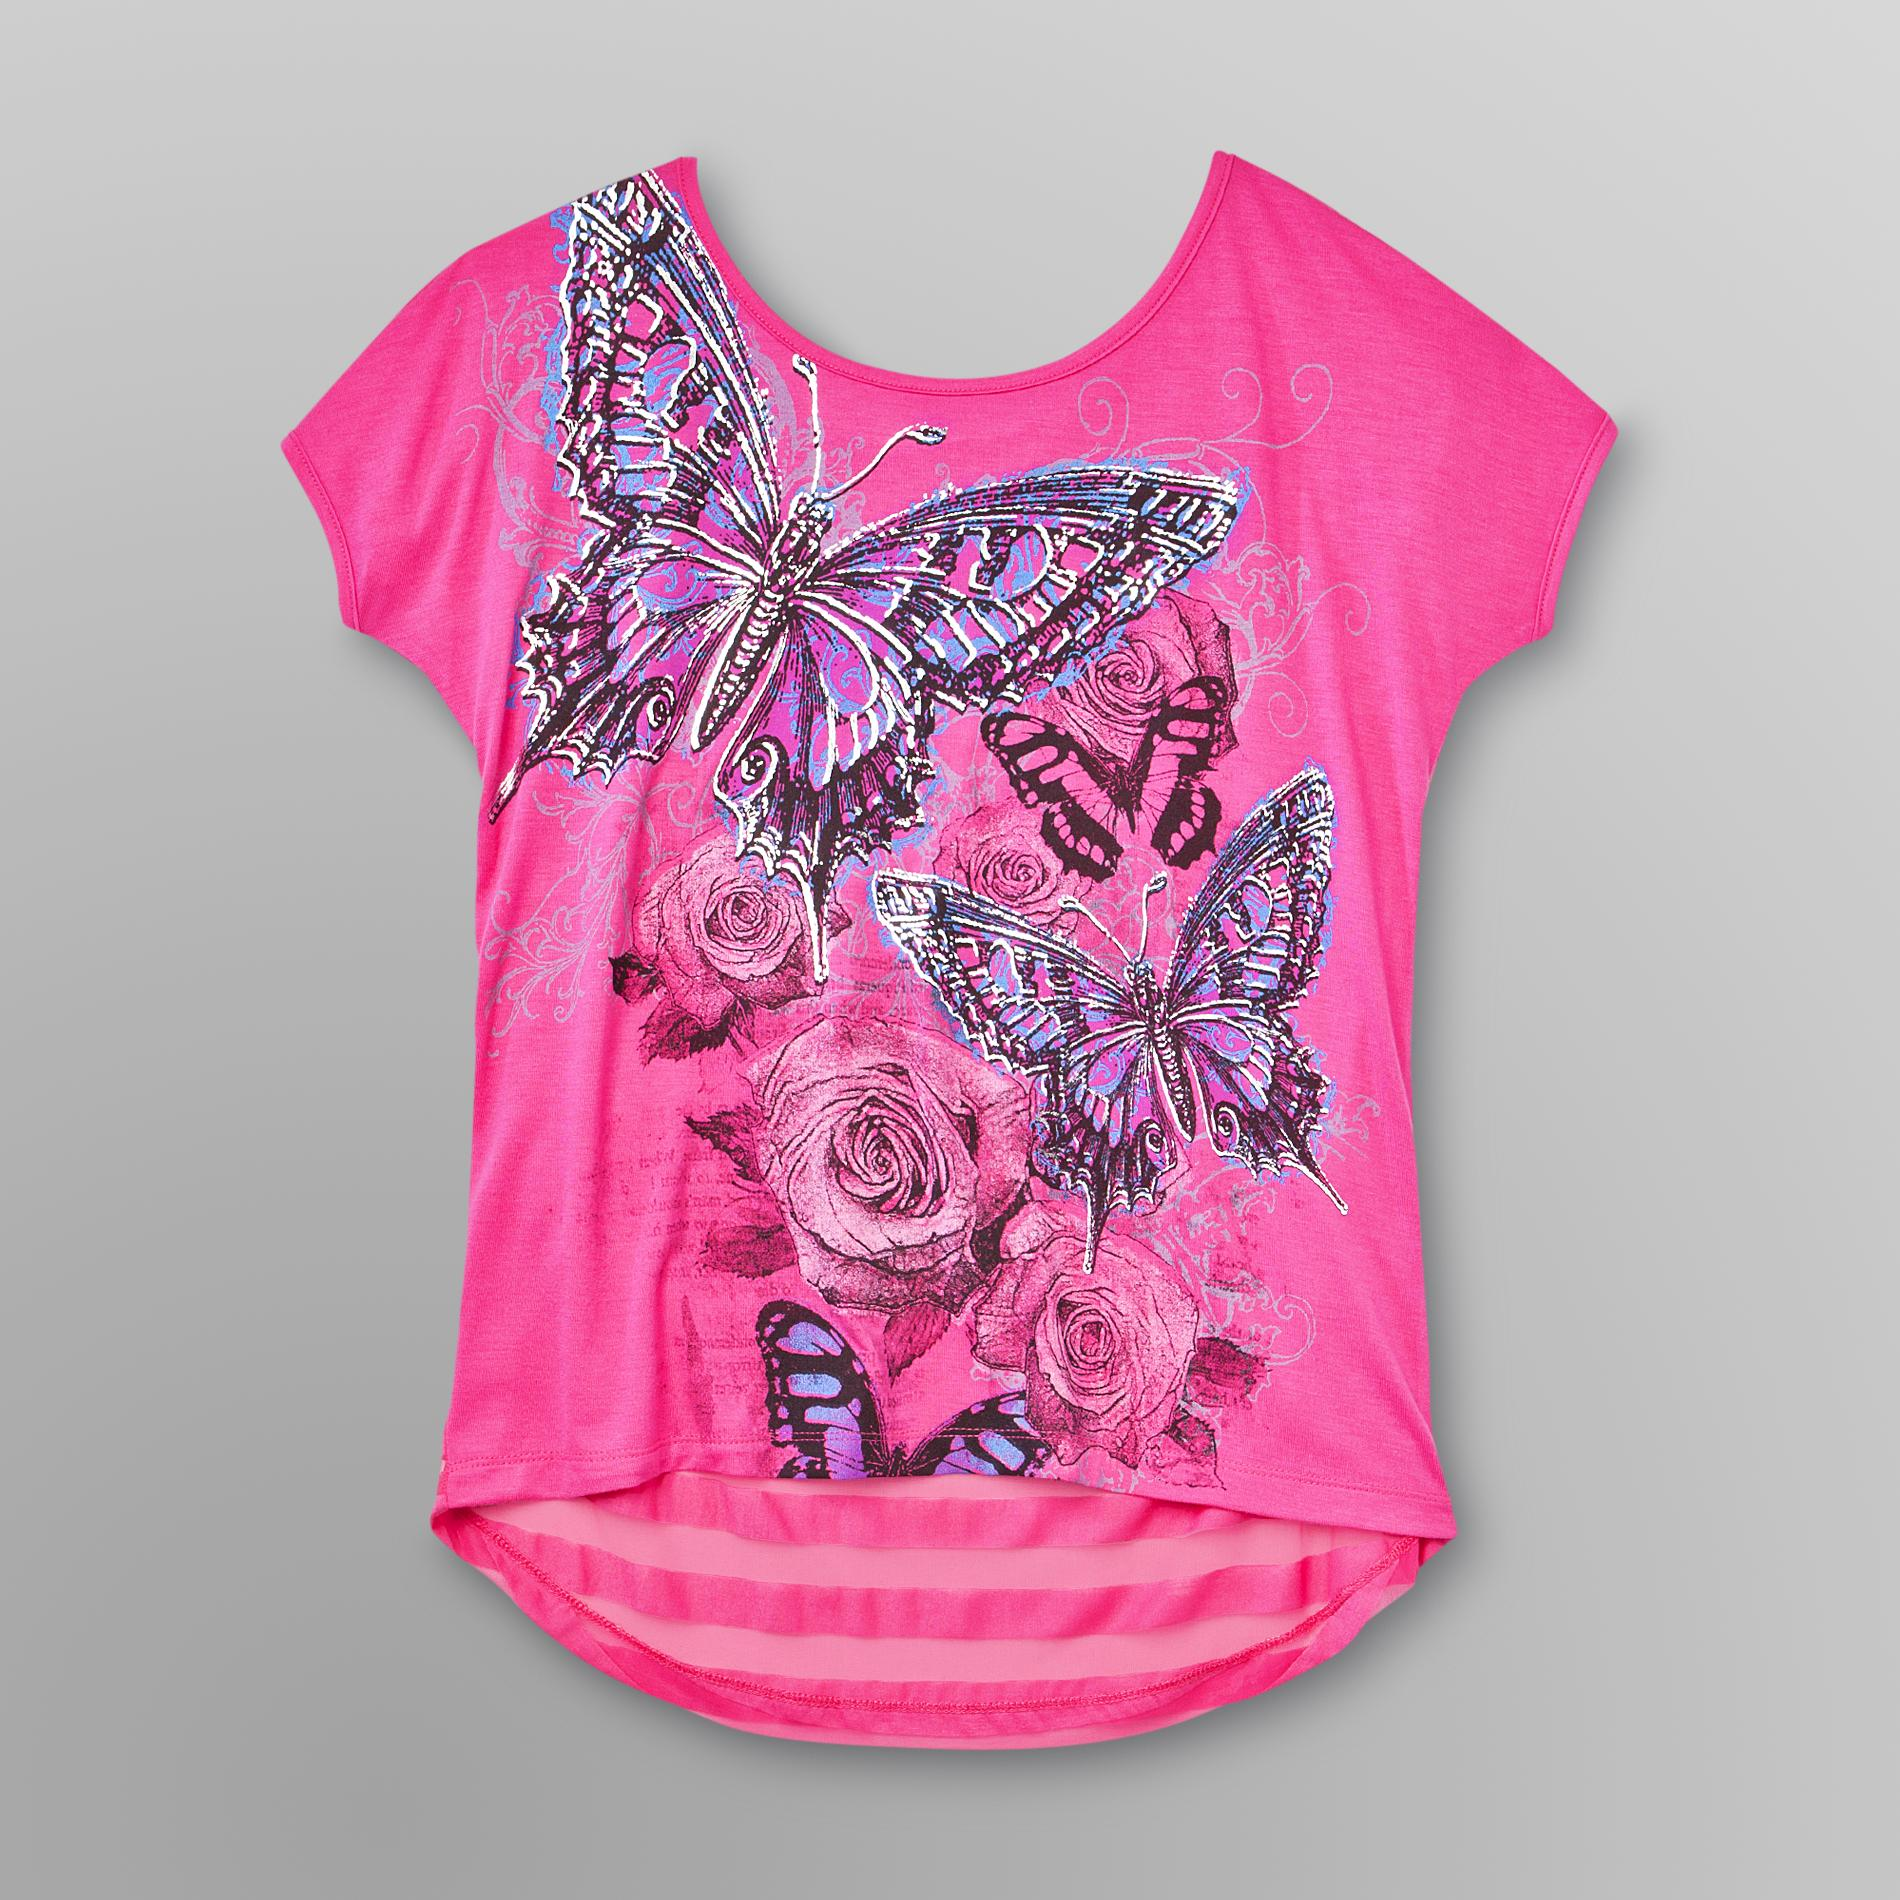 Bongo Junior's Graphic T-Shirt - Butterflies at Sears.com